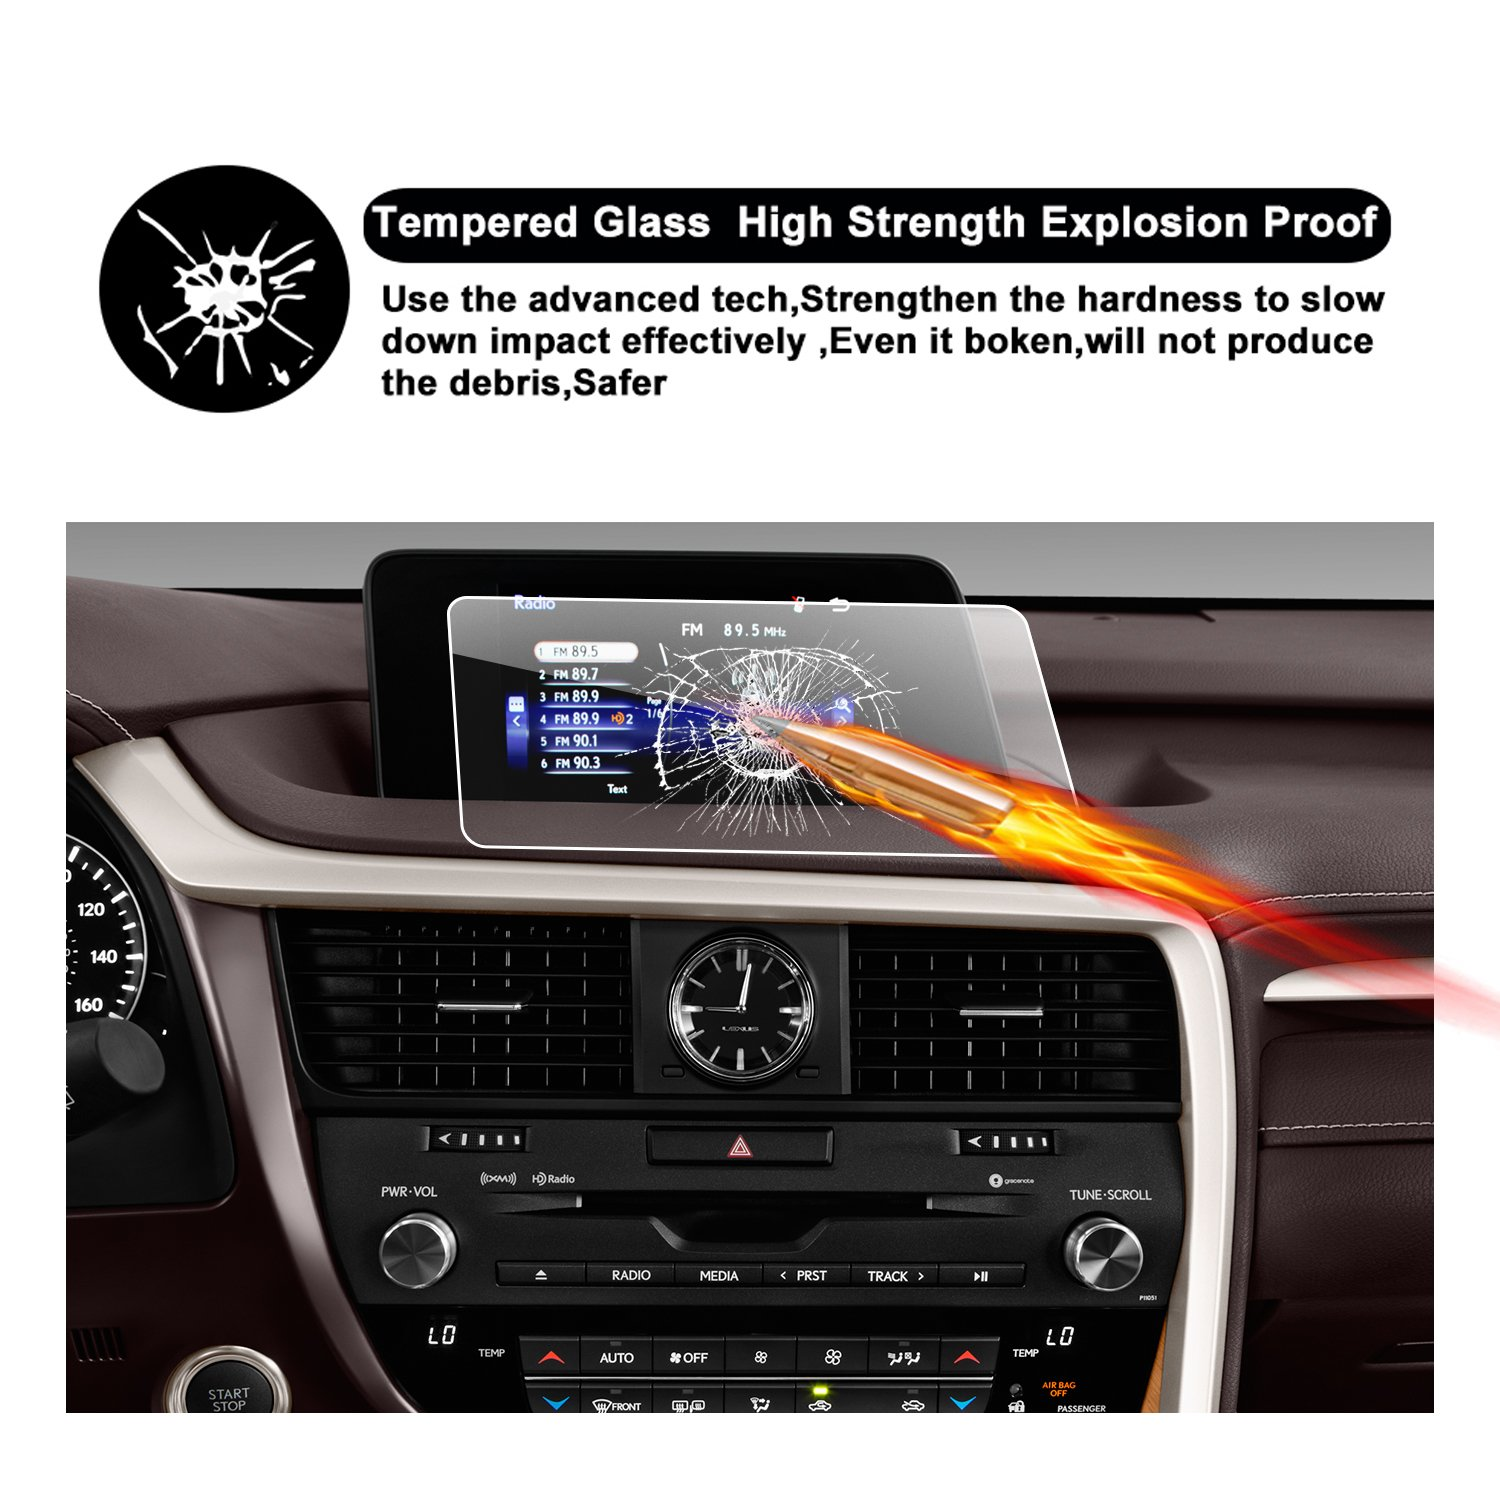 RUIYA HD Clear TEMPERED GLASS Car In-Dash Screen Protective Film 2016 2017 Lexus RX 350 8-Inch Touch Screen Car Display Navigation Screen Protector